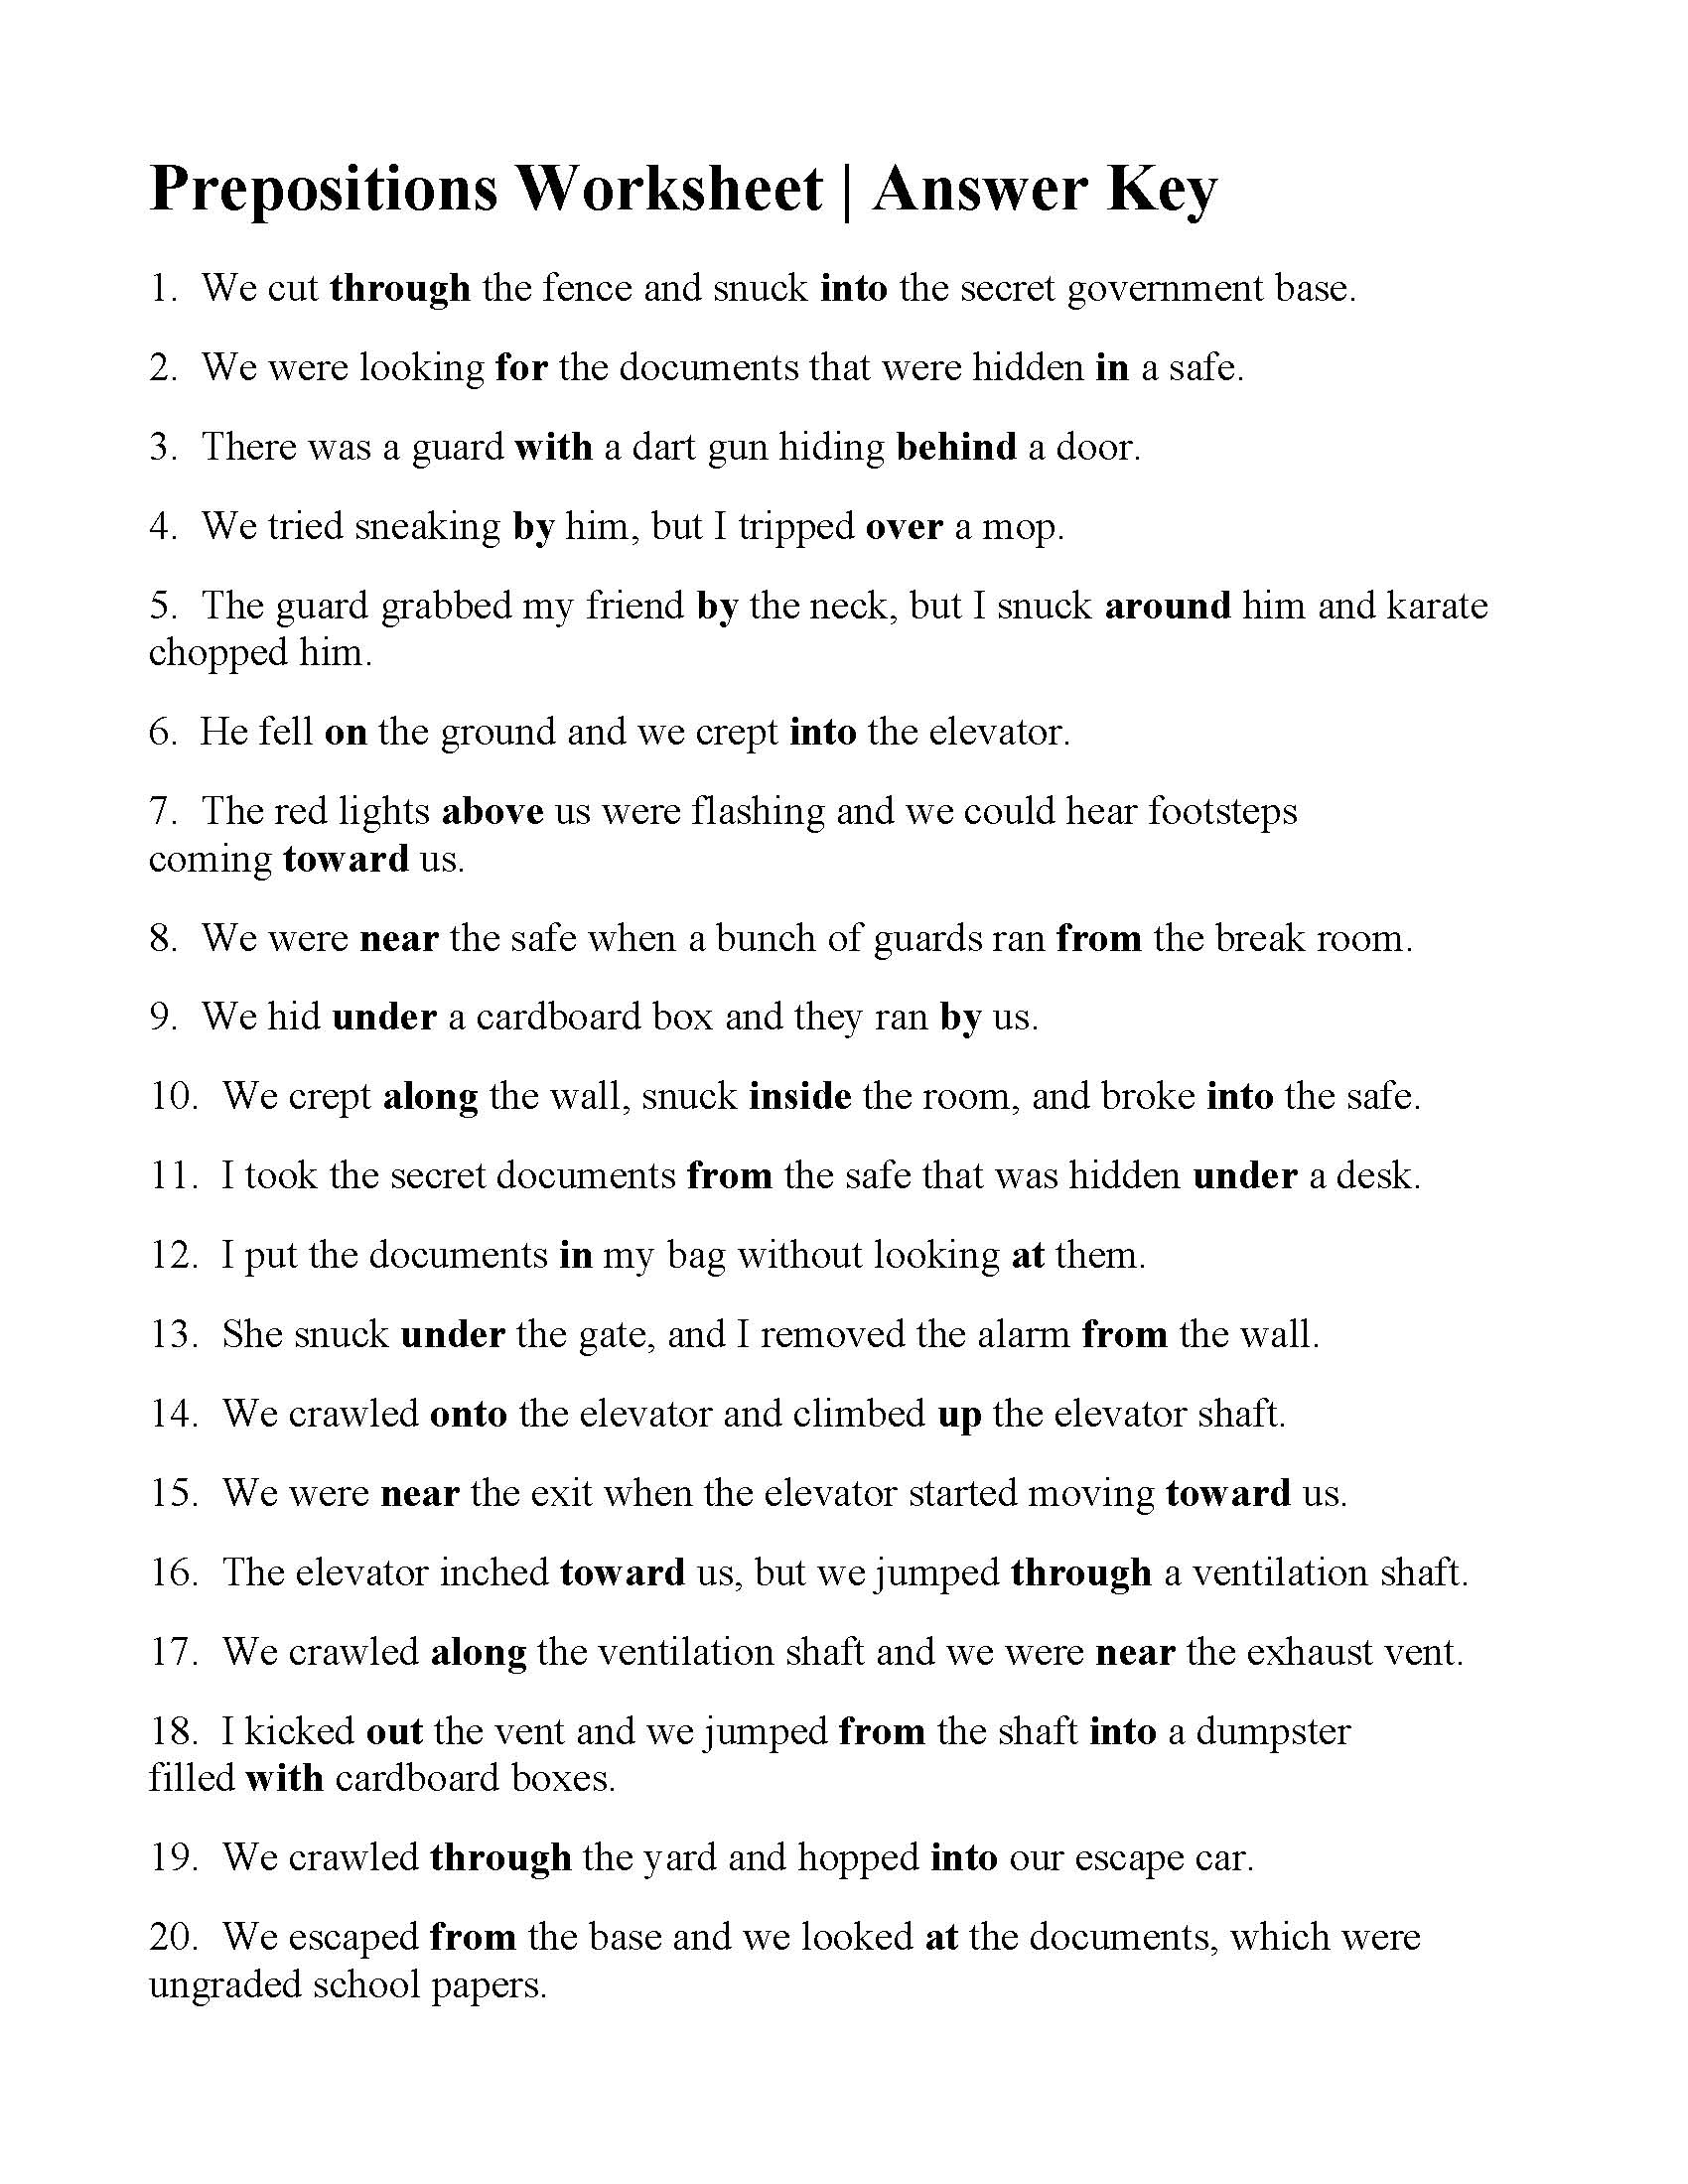 Worksheets Prepositions Worksheets prepositions worksheet answers this is the answer key for worksheet